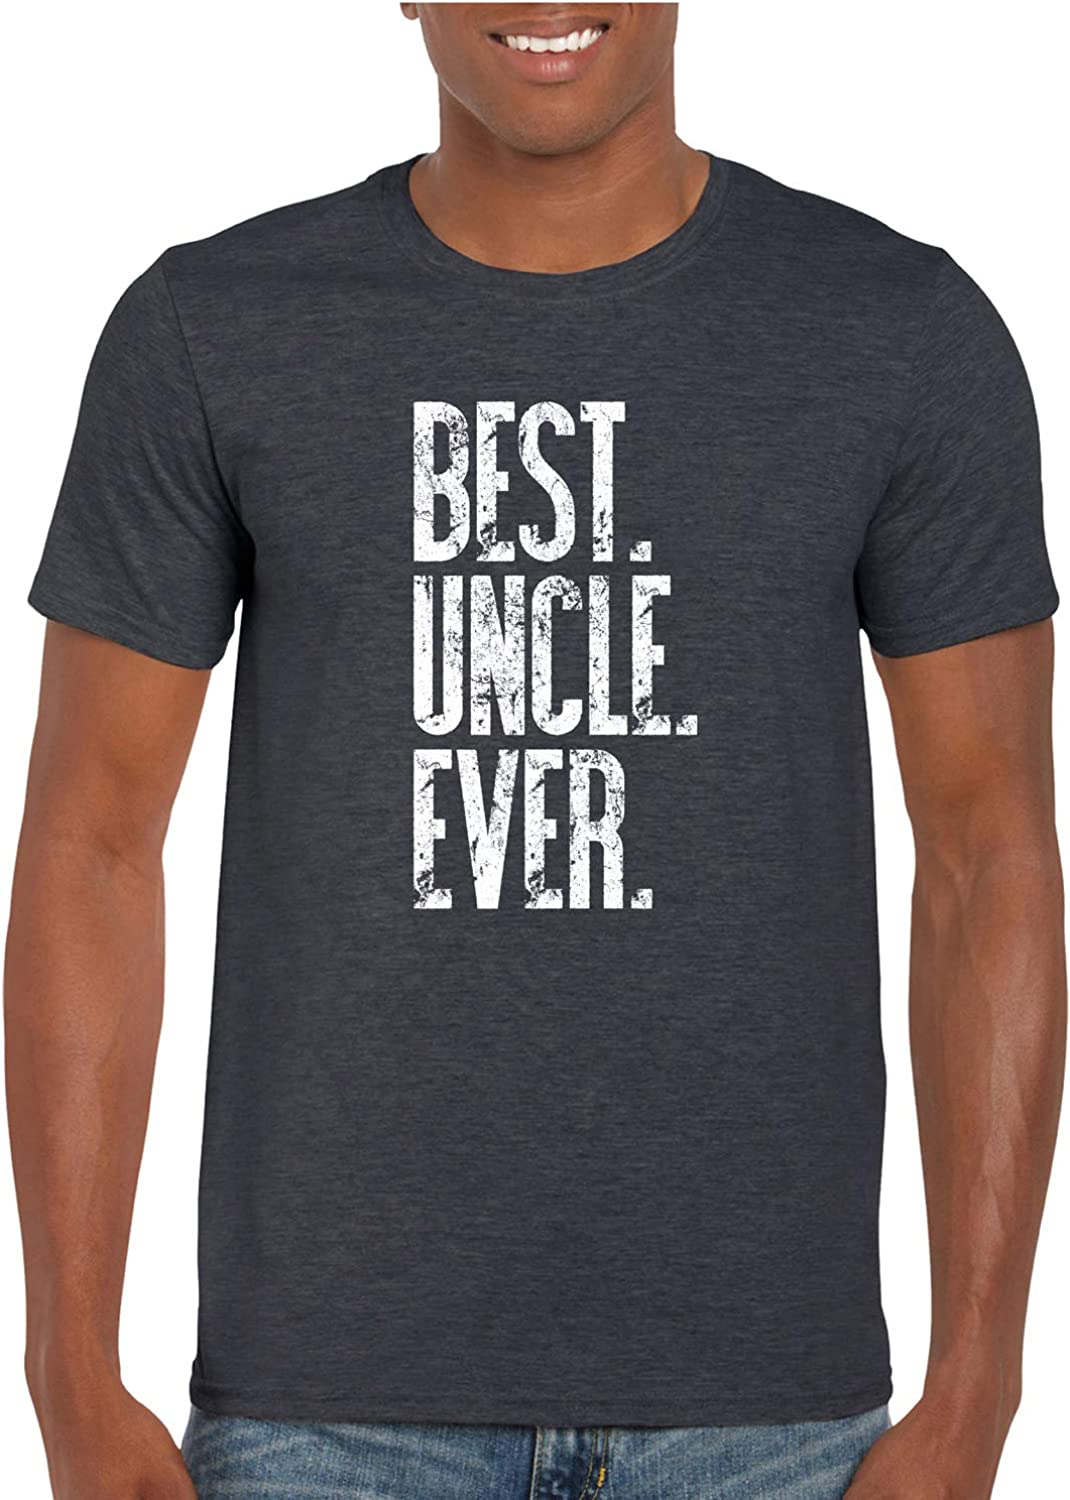 for Dad, Best Ever Shirts and Many More